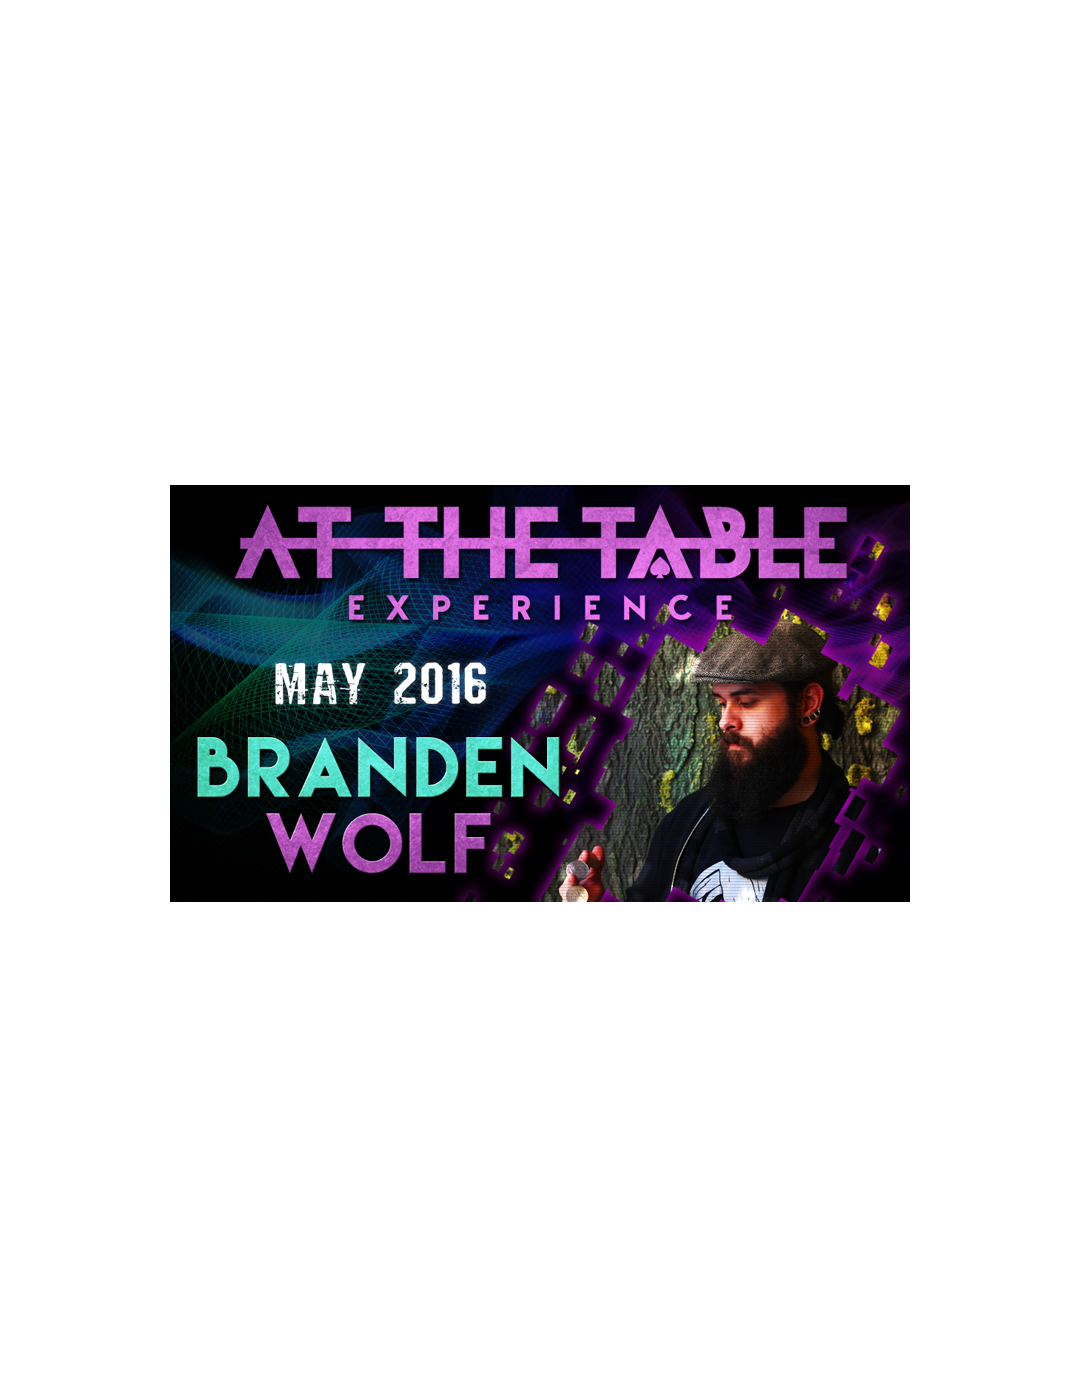 At the Table Live Lecture Branden Wolf - 4 mai 2016 - At the table lecture